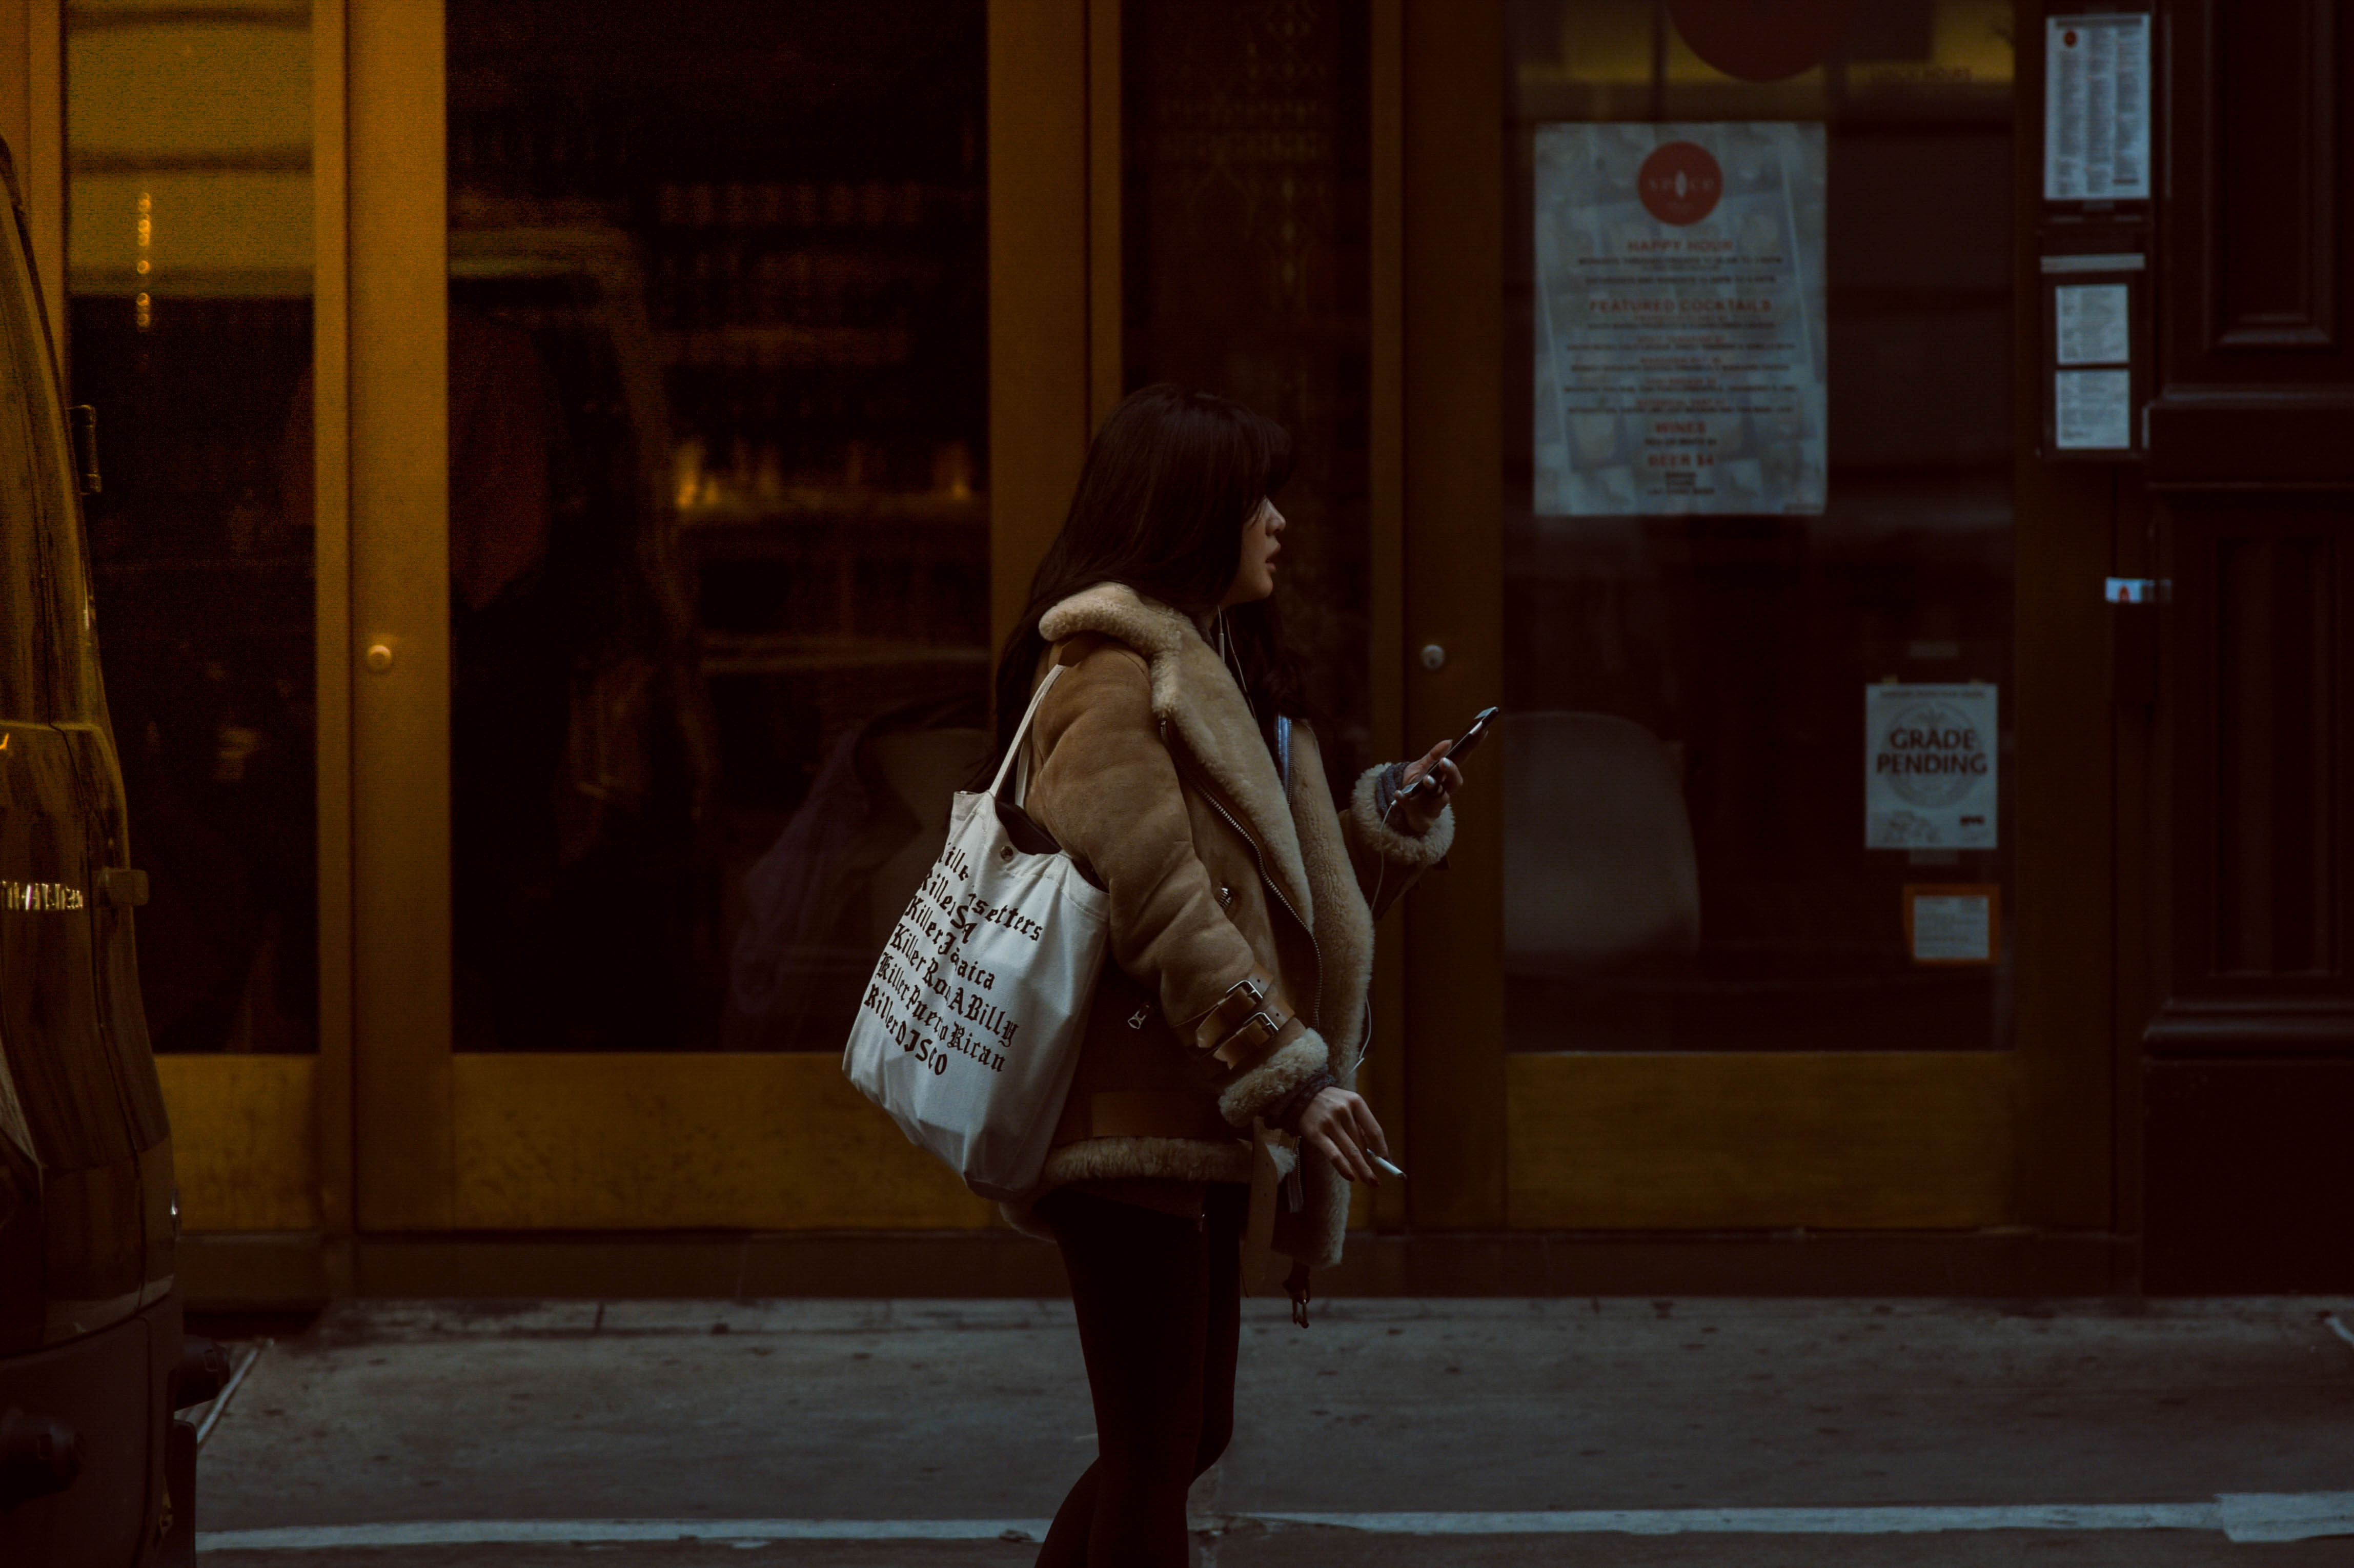 Woman carrying white tote standing beside brown glass door building photo